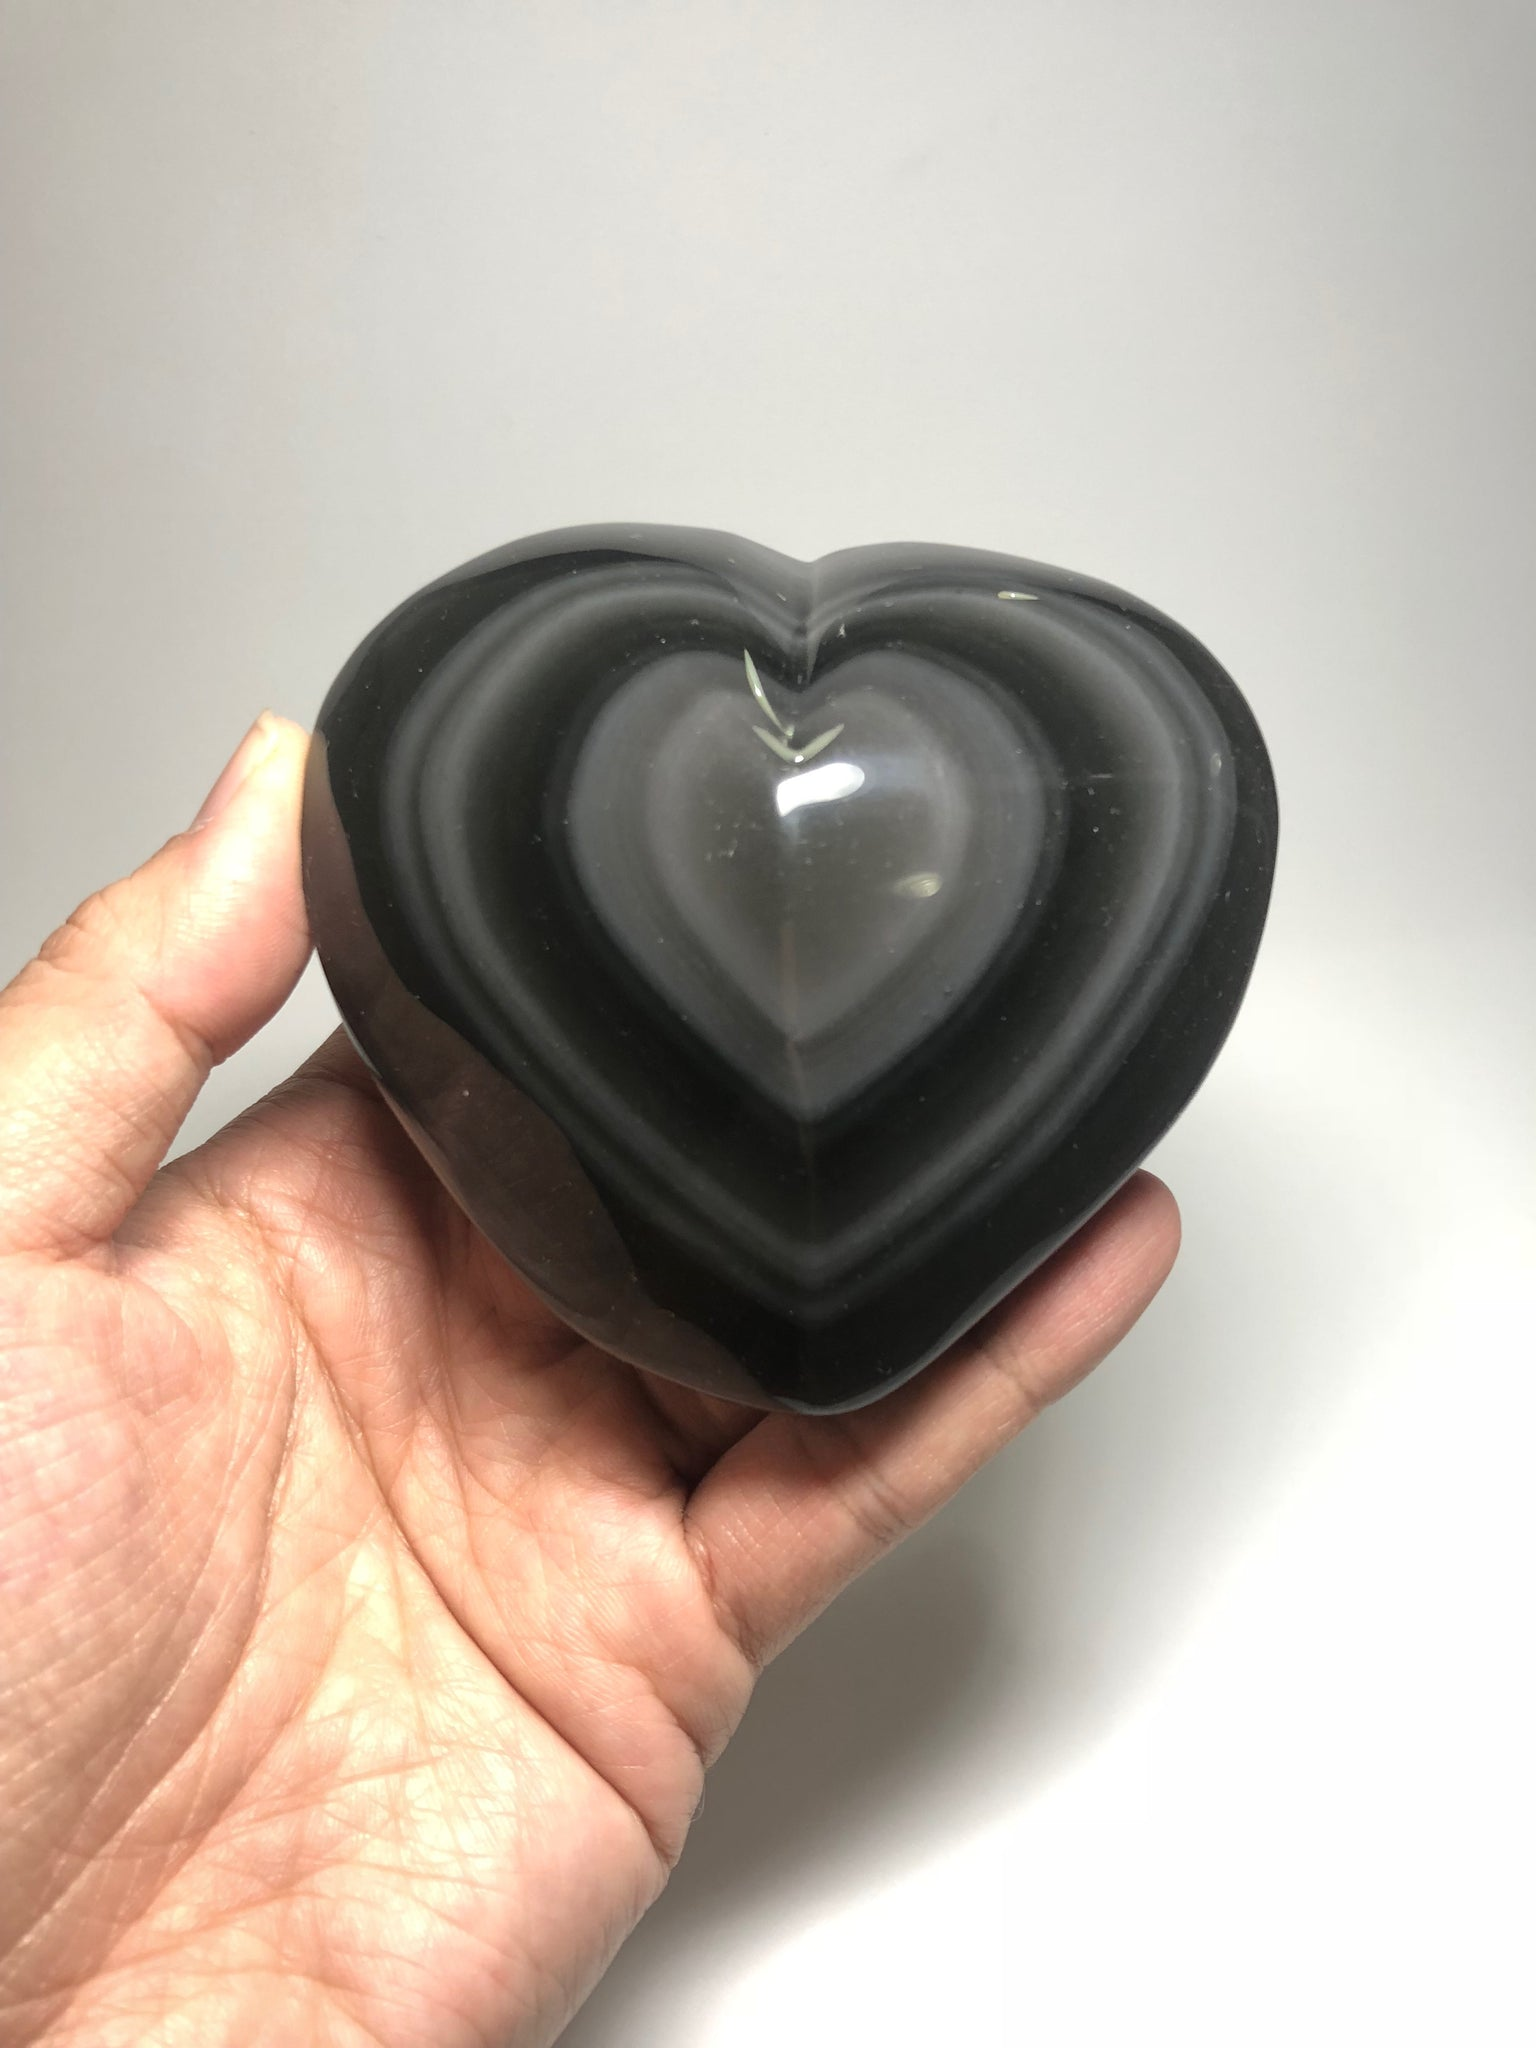 Rainbow Obsidian Polished Heart Shape 336g